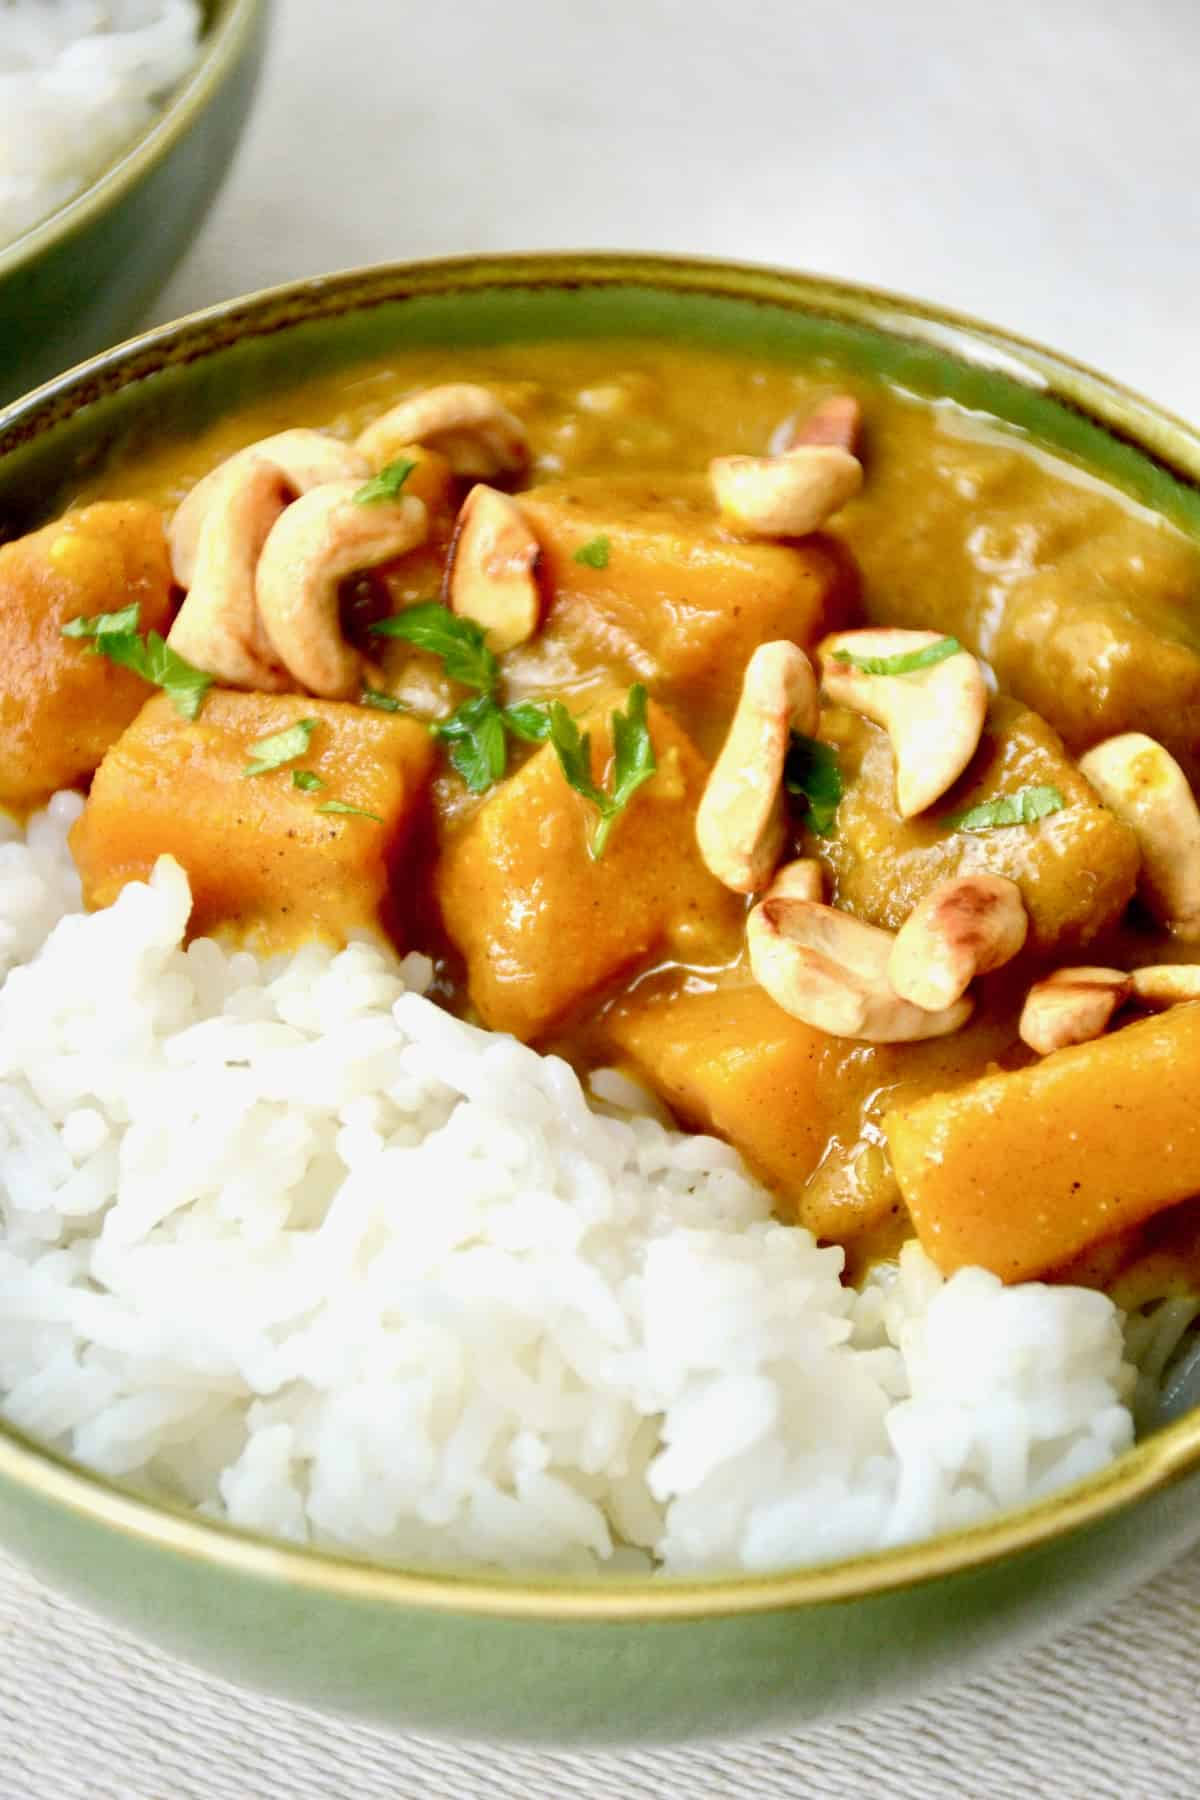 Cubes of pumpkin in a thick curry sauce, topped with cashews and served with white rice.